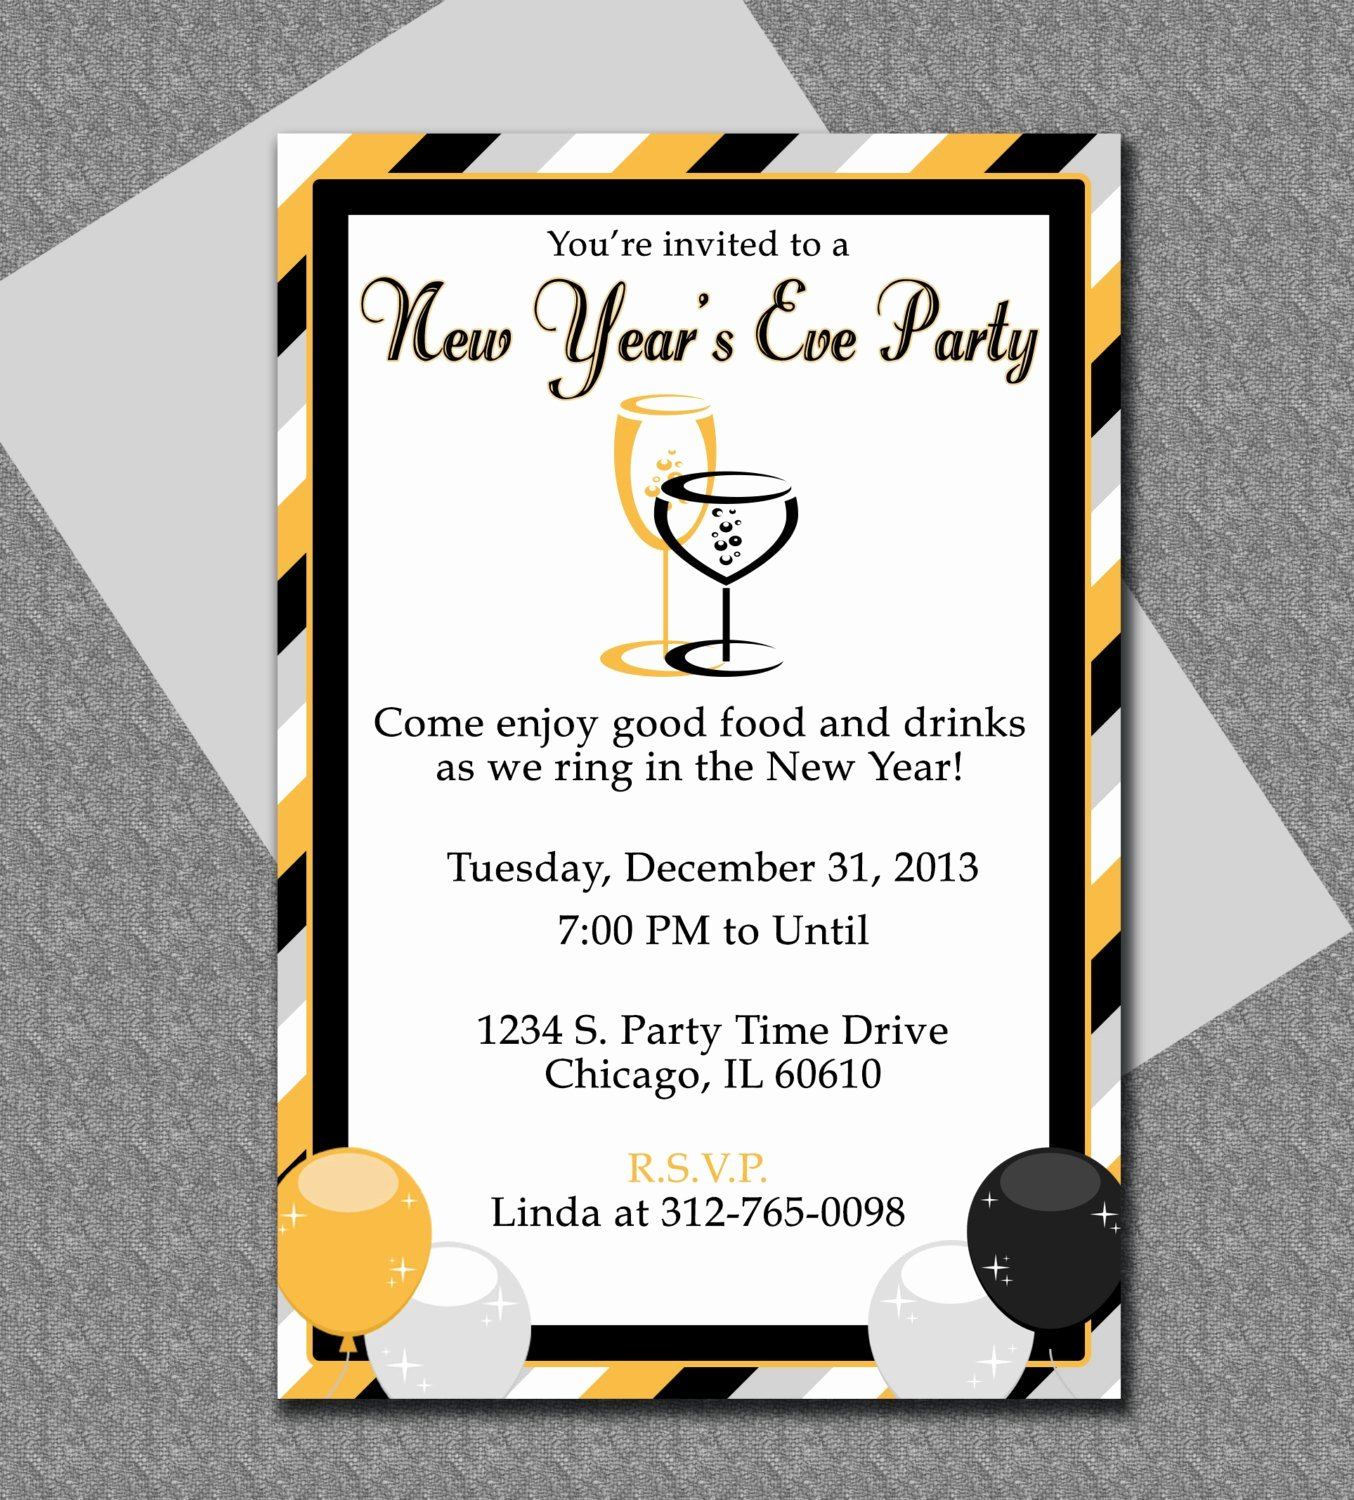 New Years Eve Party Invitation Editable Template